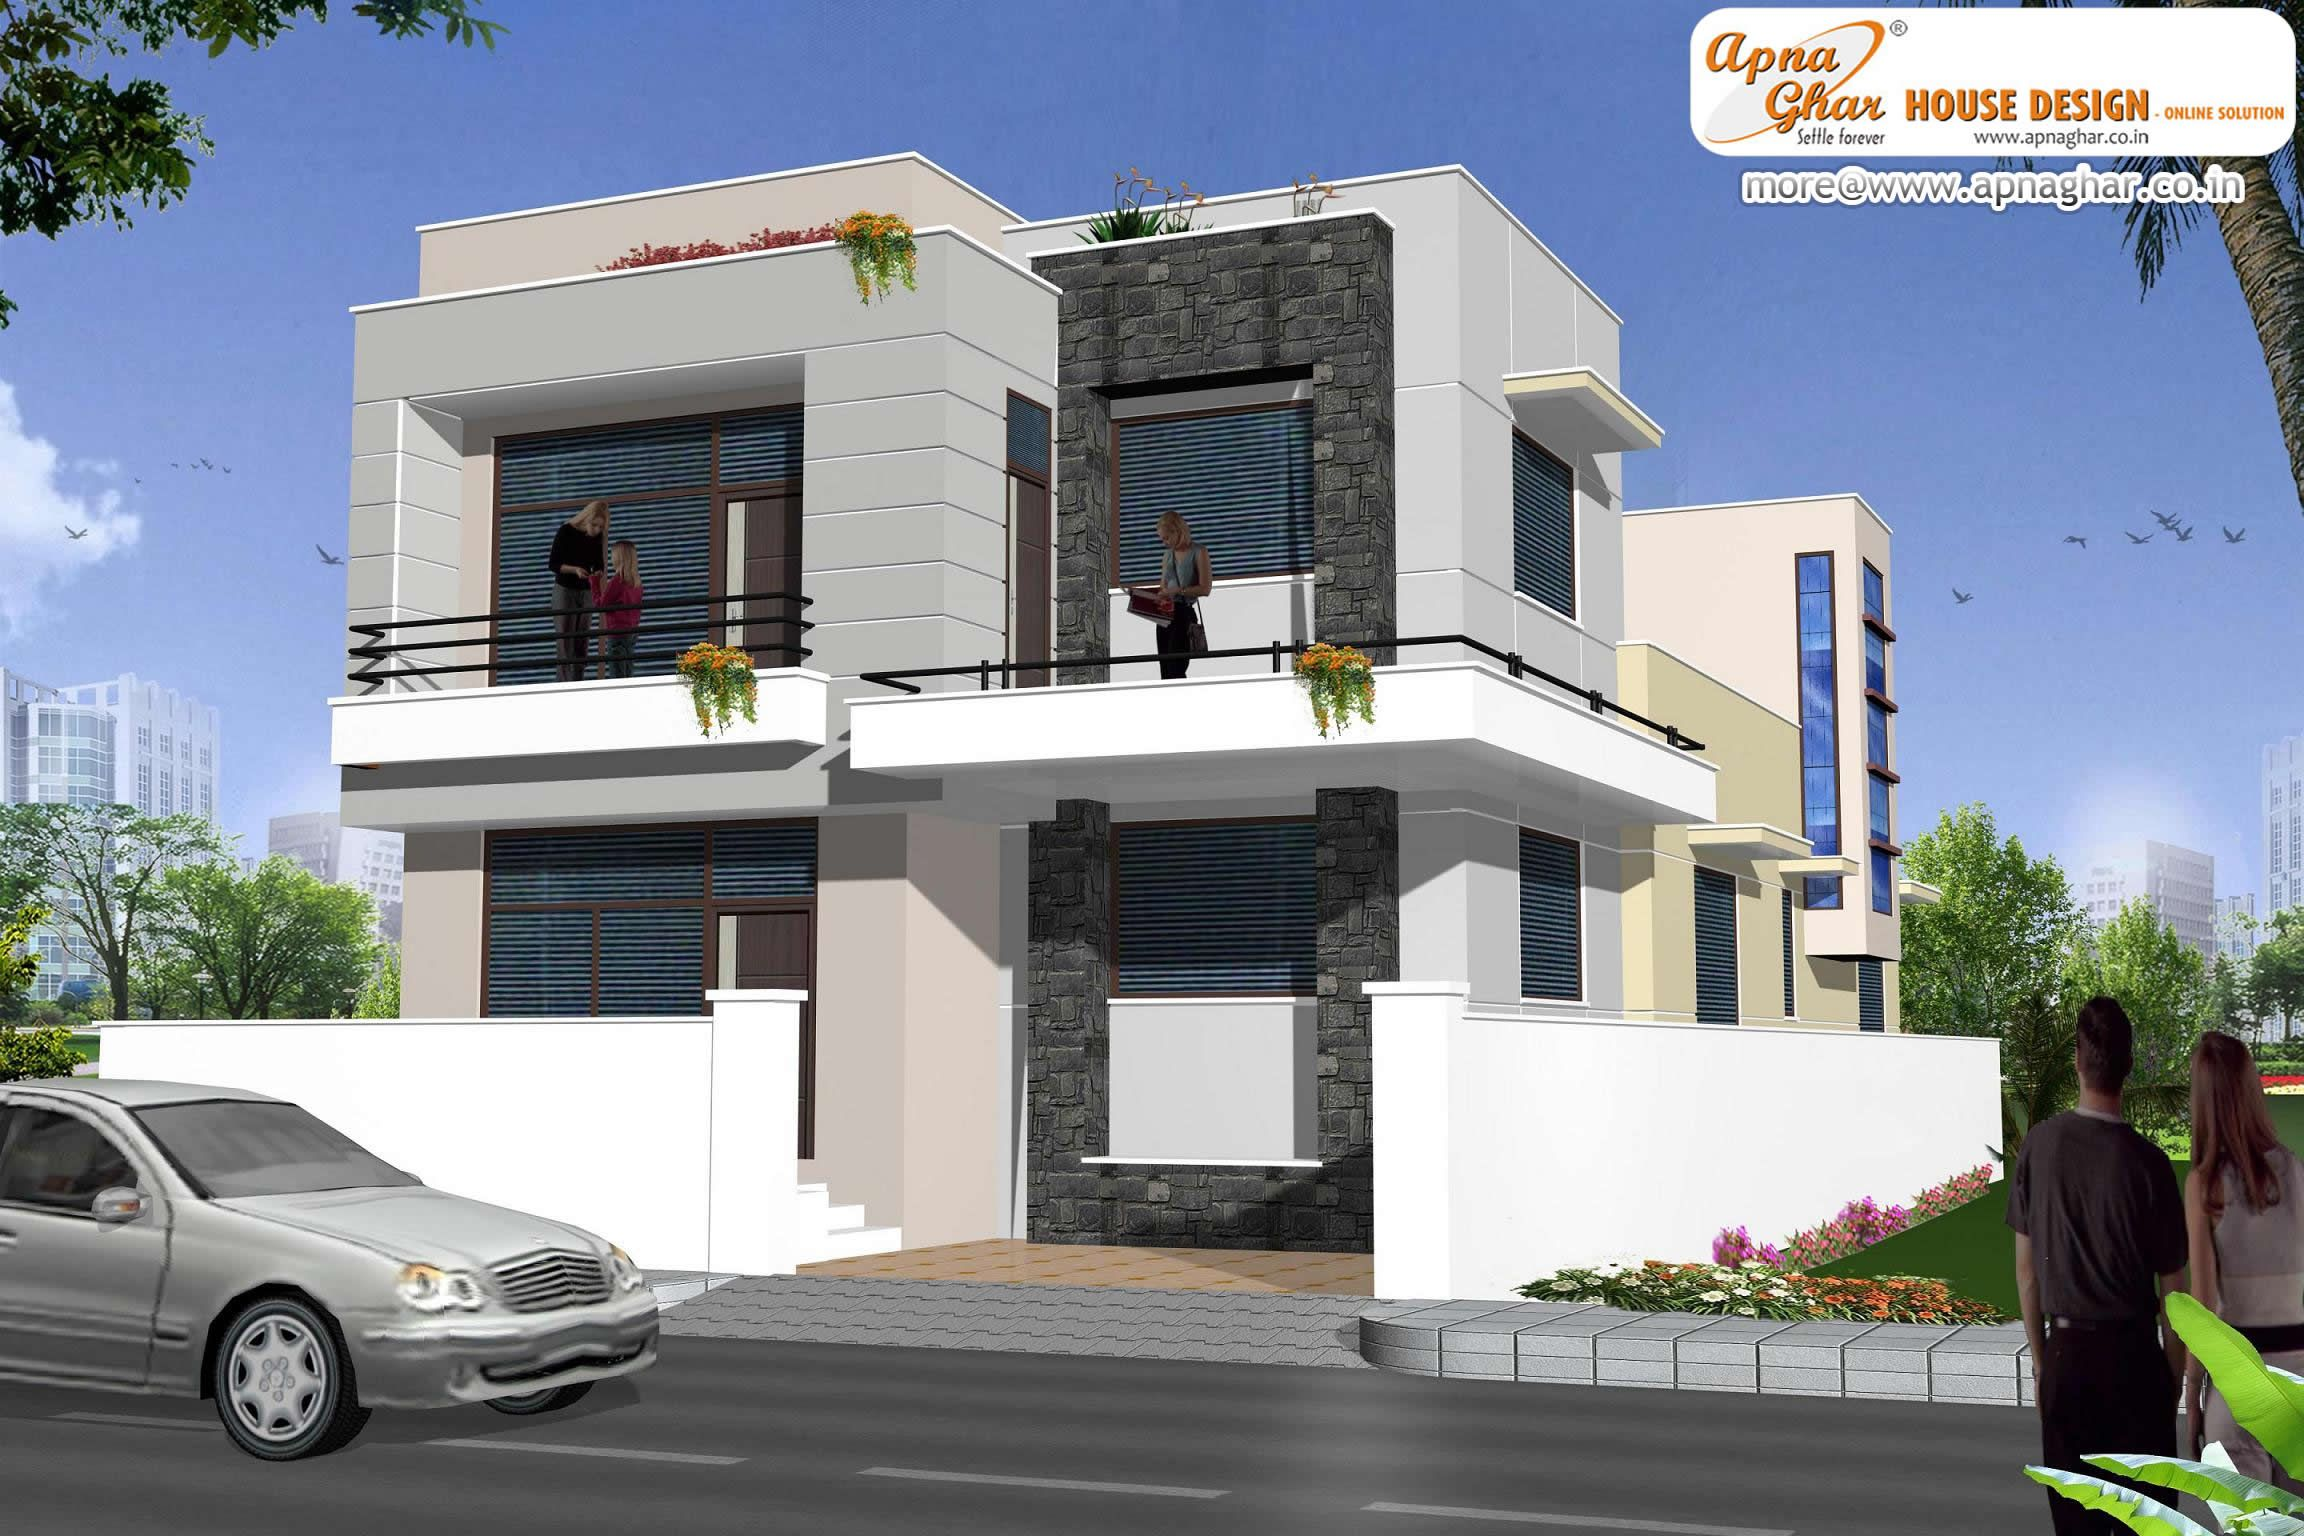 Modern duplex 2 floor house design area 198m2 9m x for Best duplex house plans in india